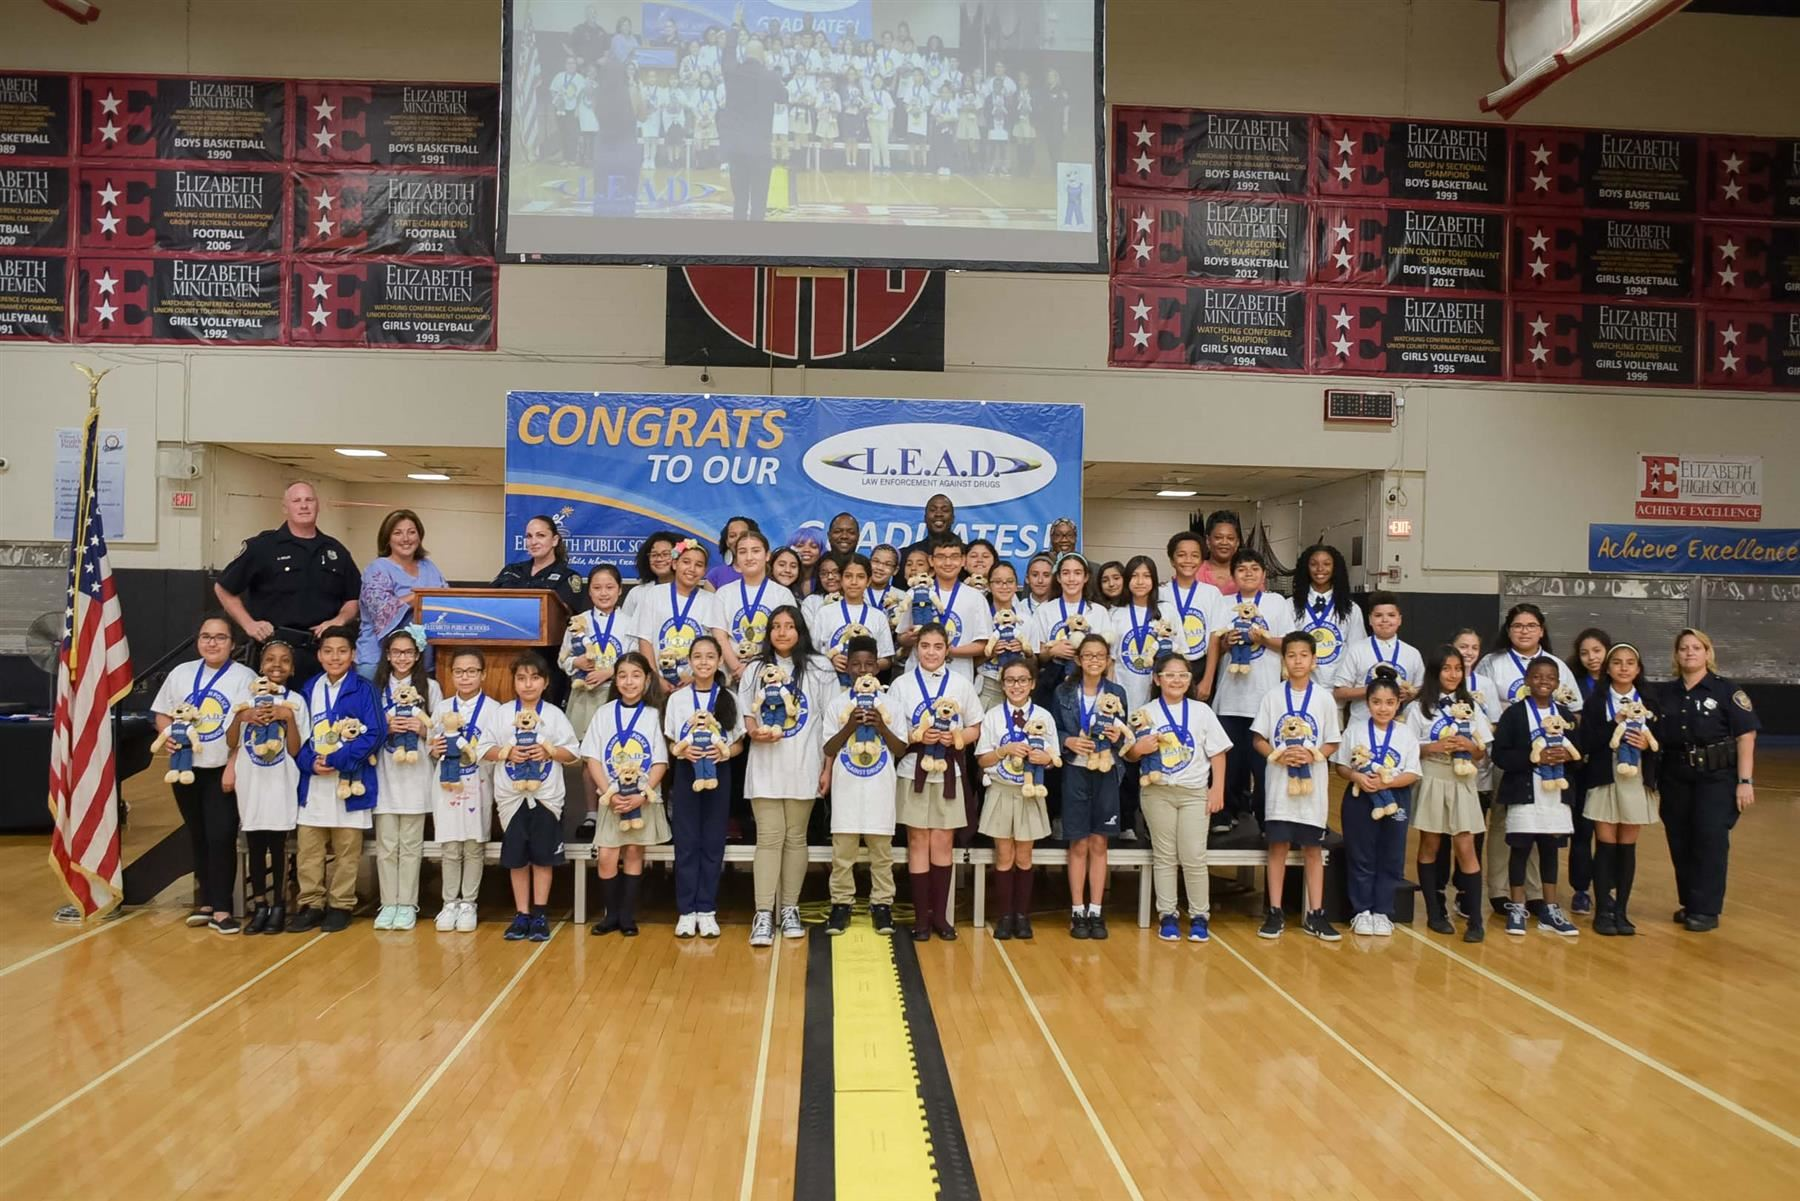 Law Enforcement Against Drugs (L.E.A.D.) Class of 2018 Graduation Ceremonies